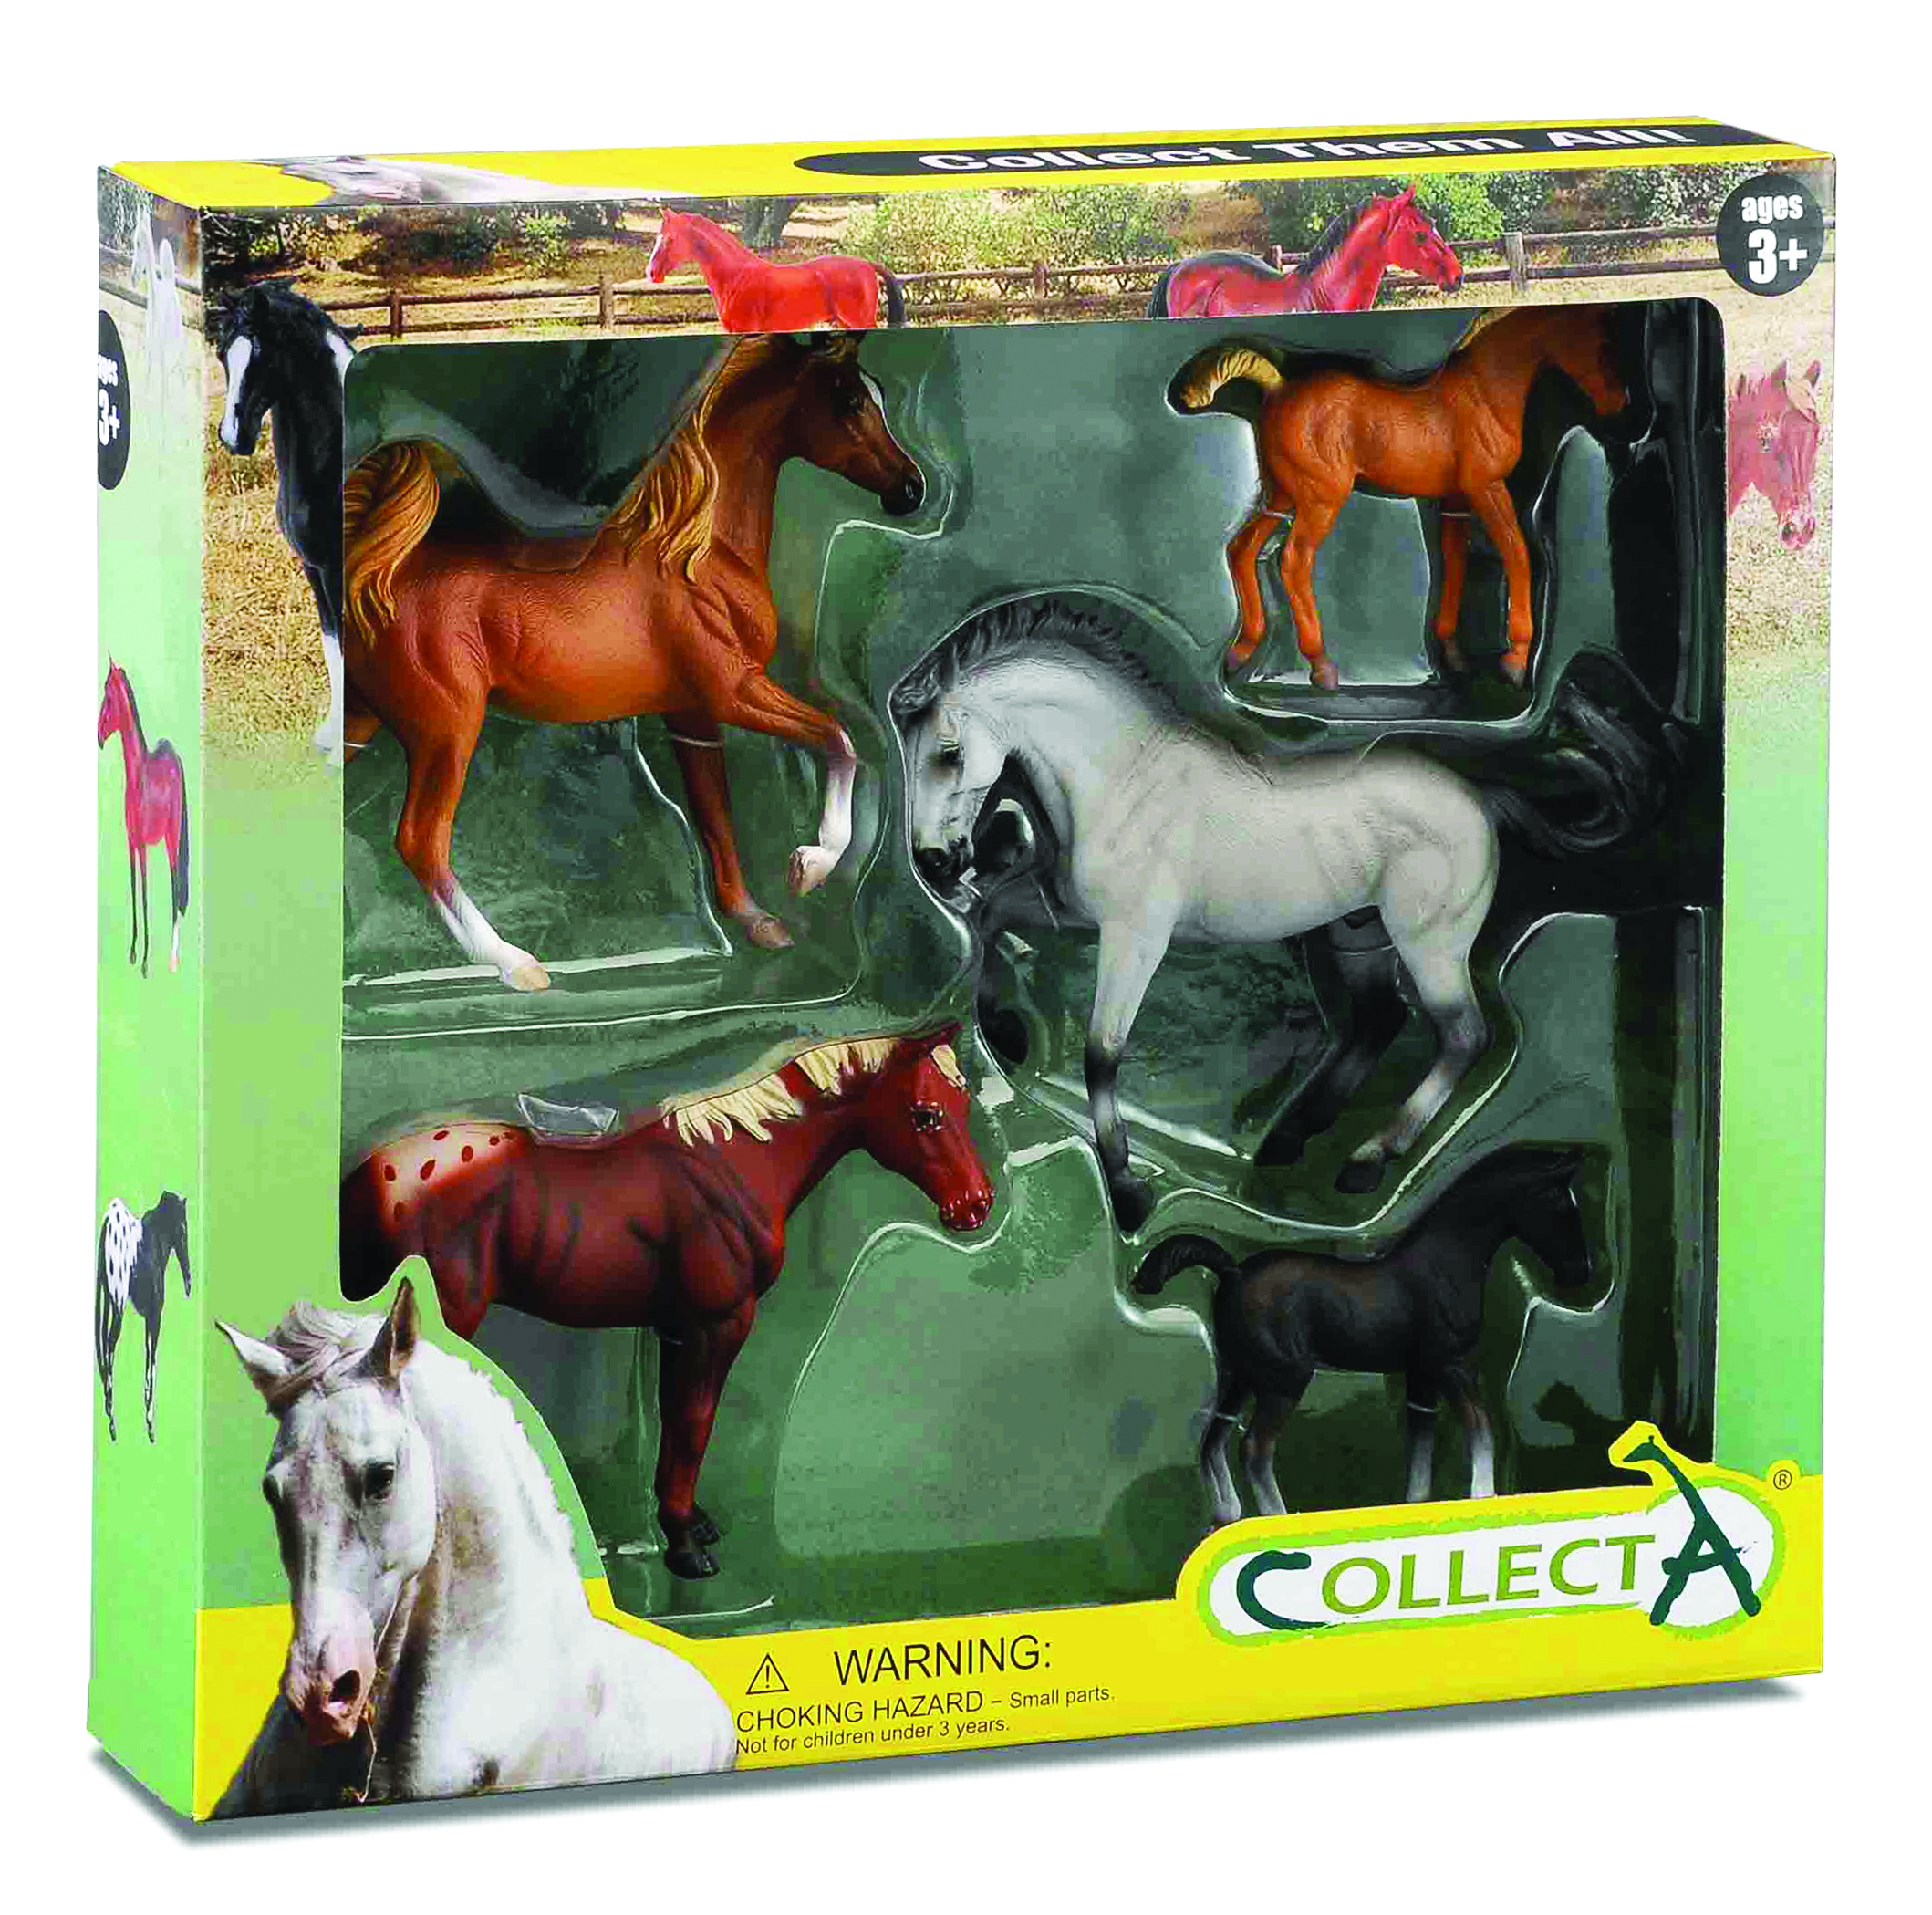 CollectA 5pc Box Set, Appaloosa, Chestnut & Grey Horses, Palomino & Black Foals